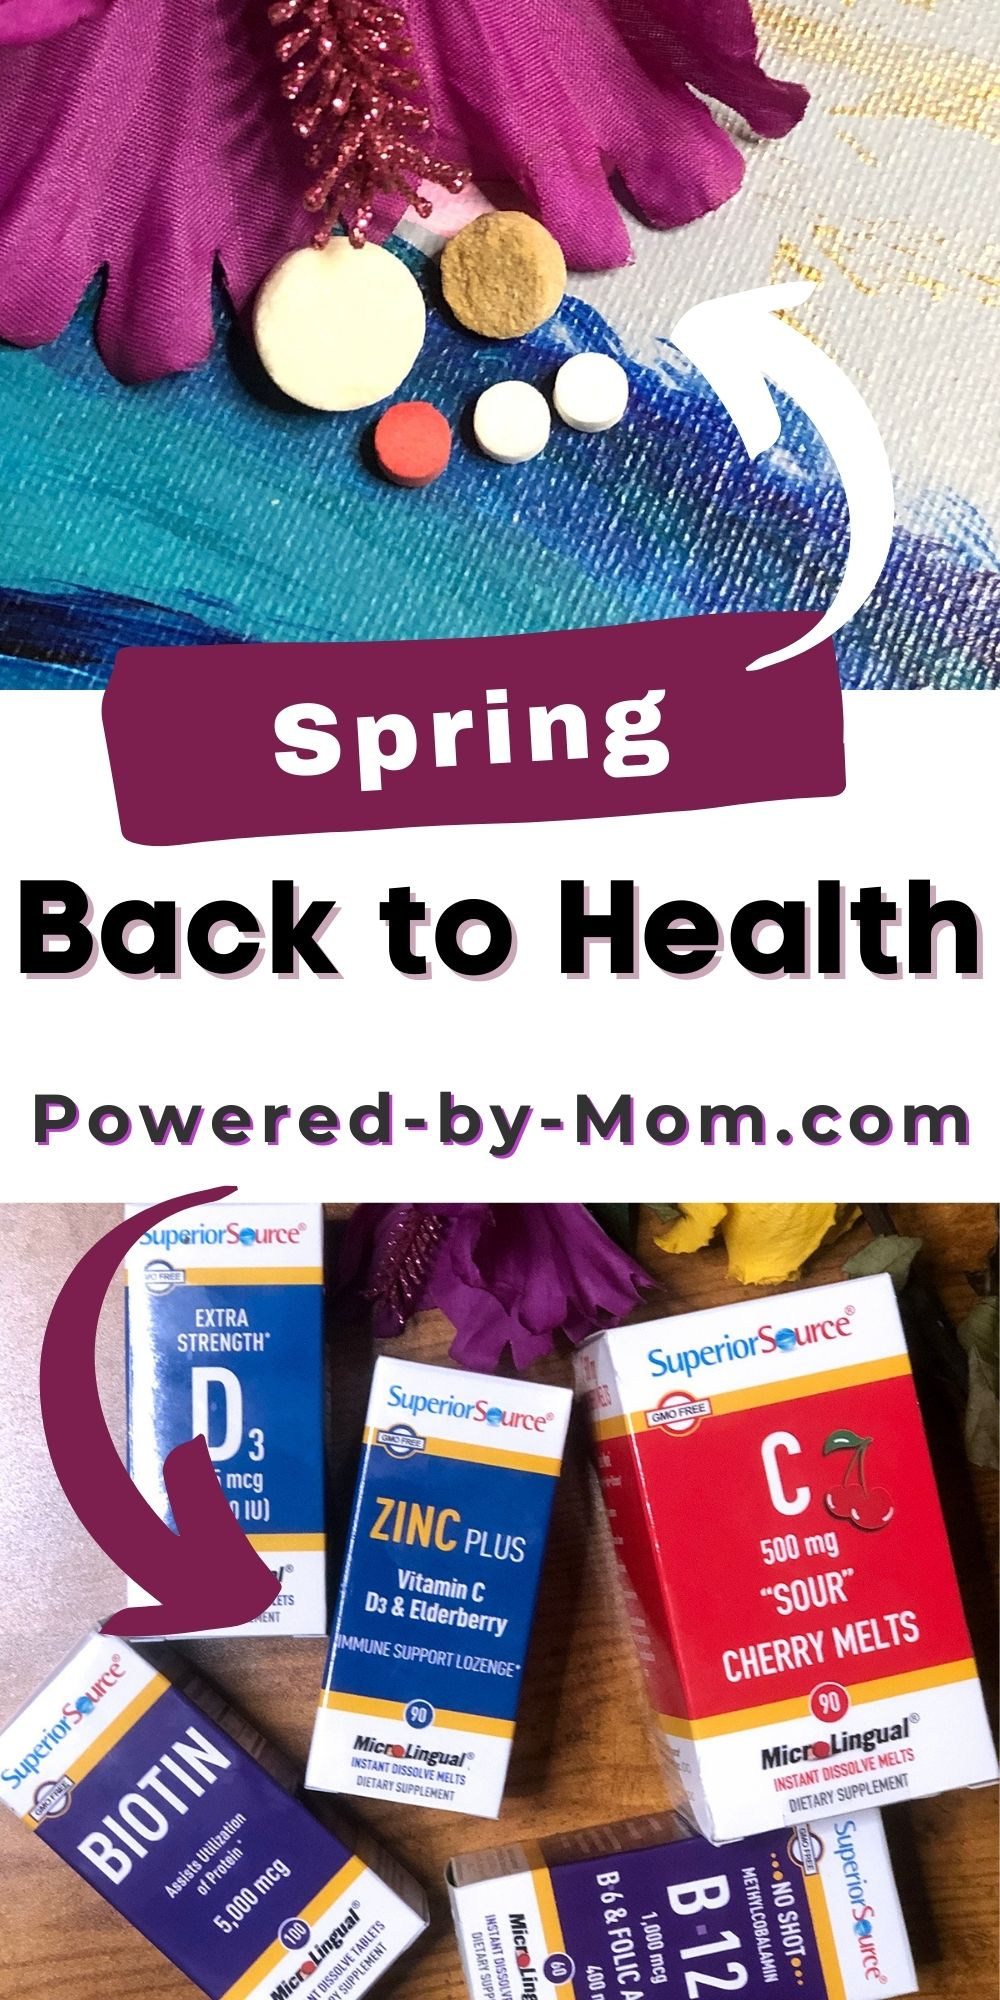 Spring back to health this Springtime, keep your energy up, and enjoy the nice days! Luckily these supplements help.